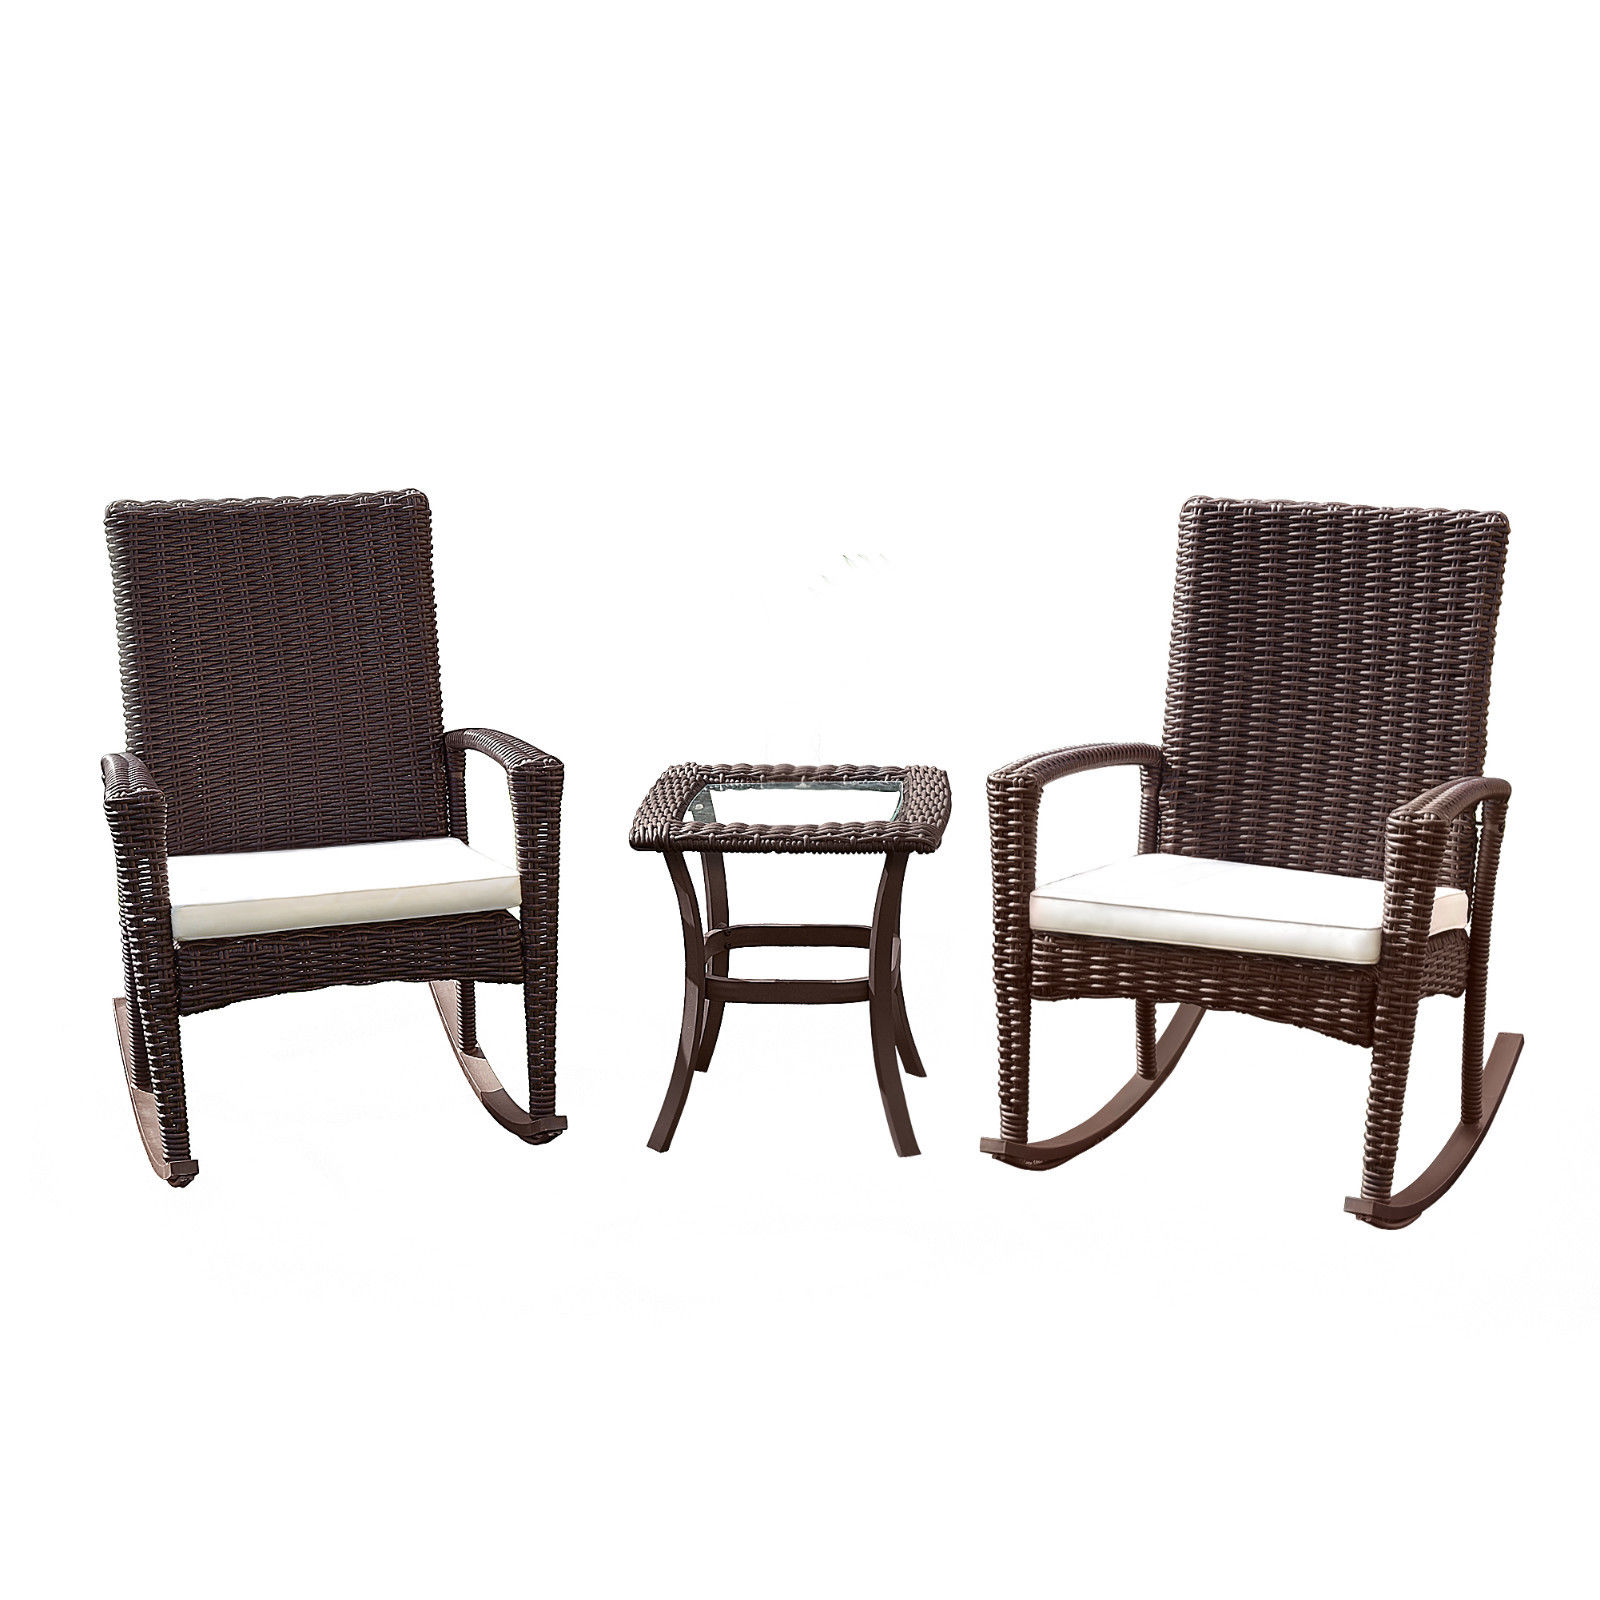 Gymax 3PC Patio Rattan Wicker Furniture Set Cushioned Outdoor Garden - image 1 of 8